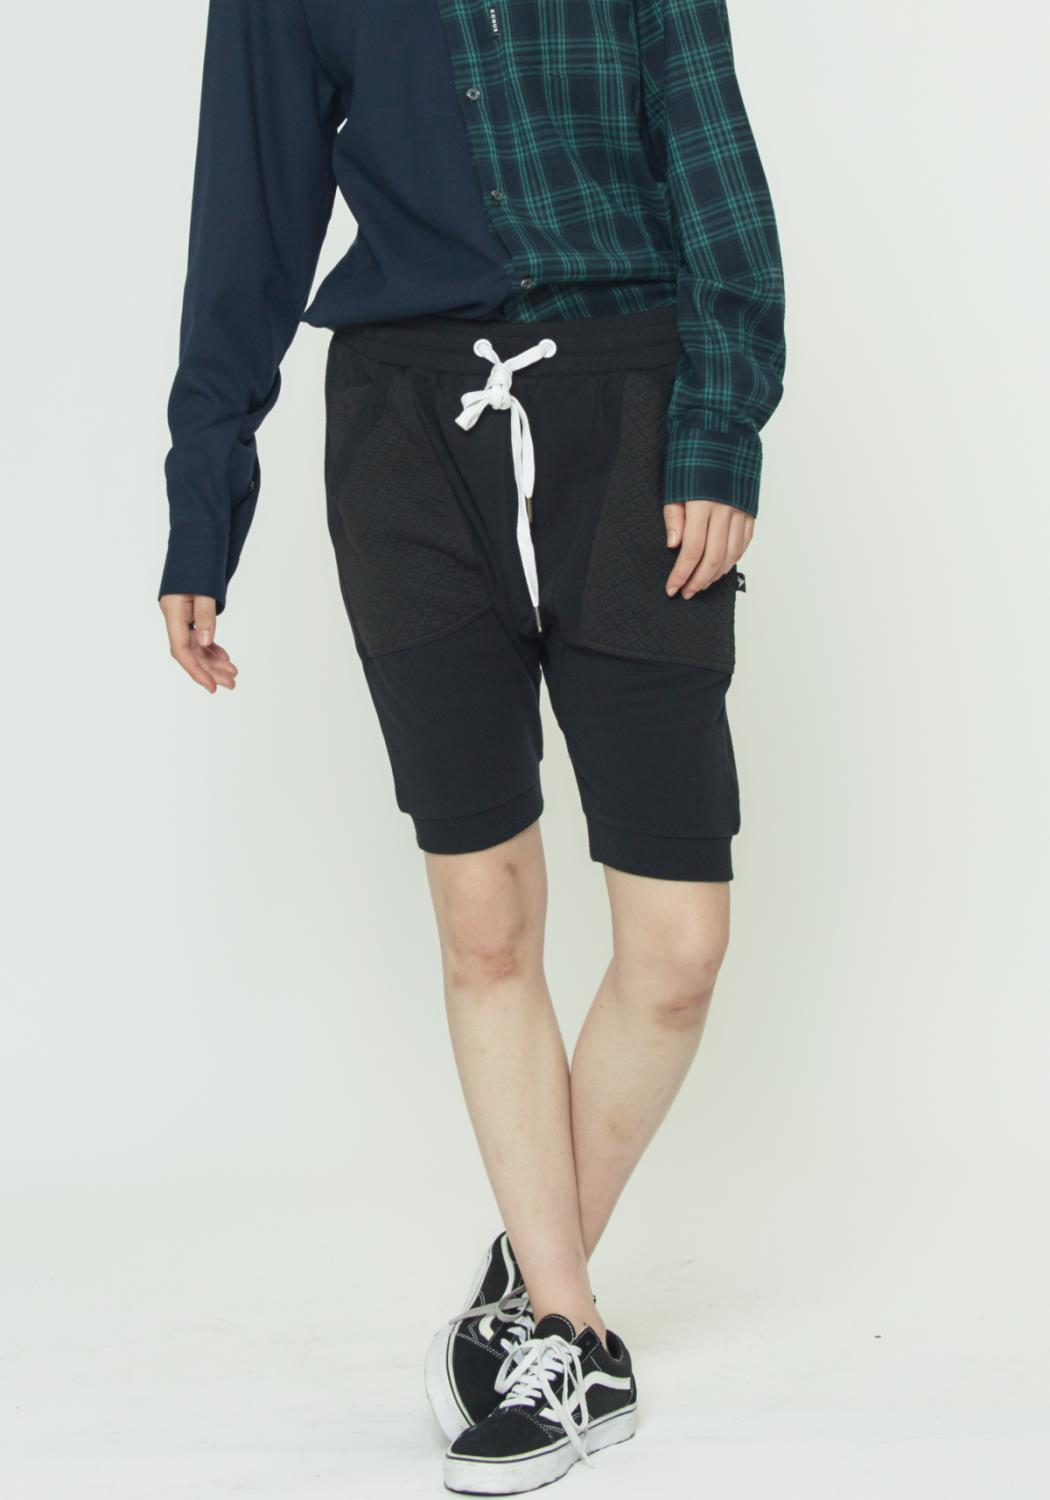 DROP CROTCH SHORTS CONTRAST POCKETS